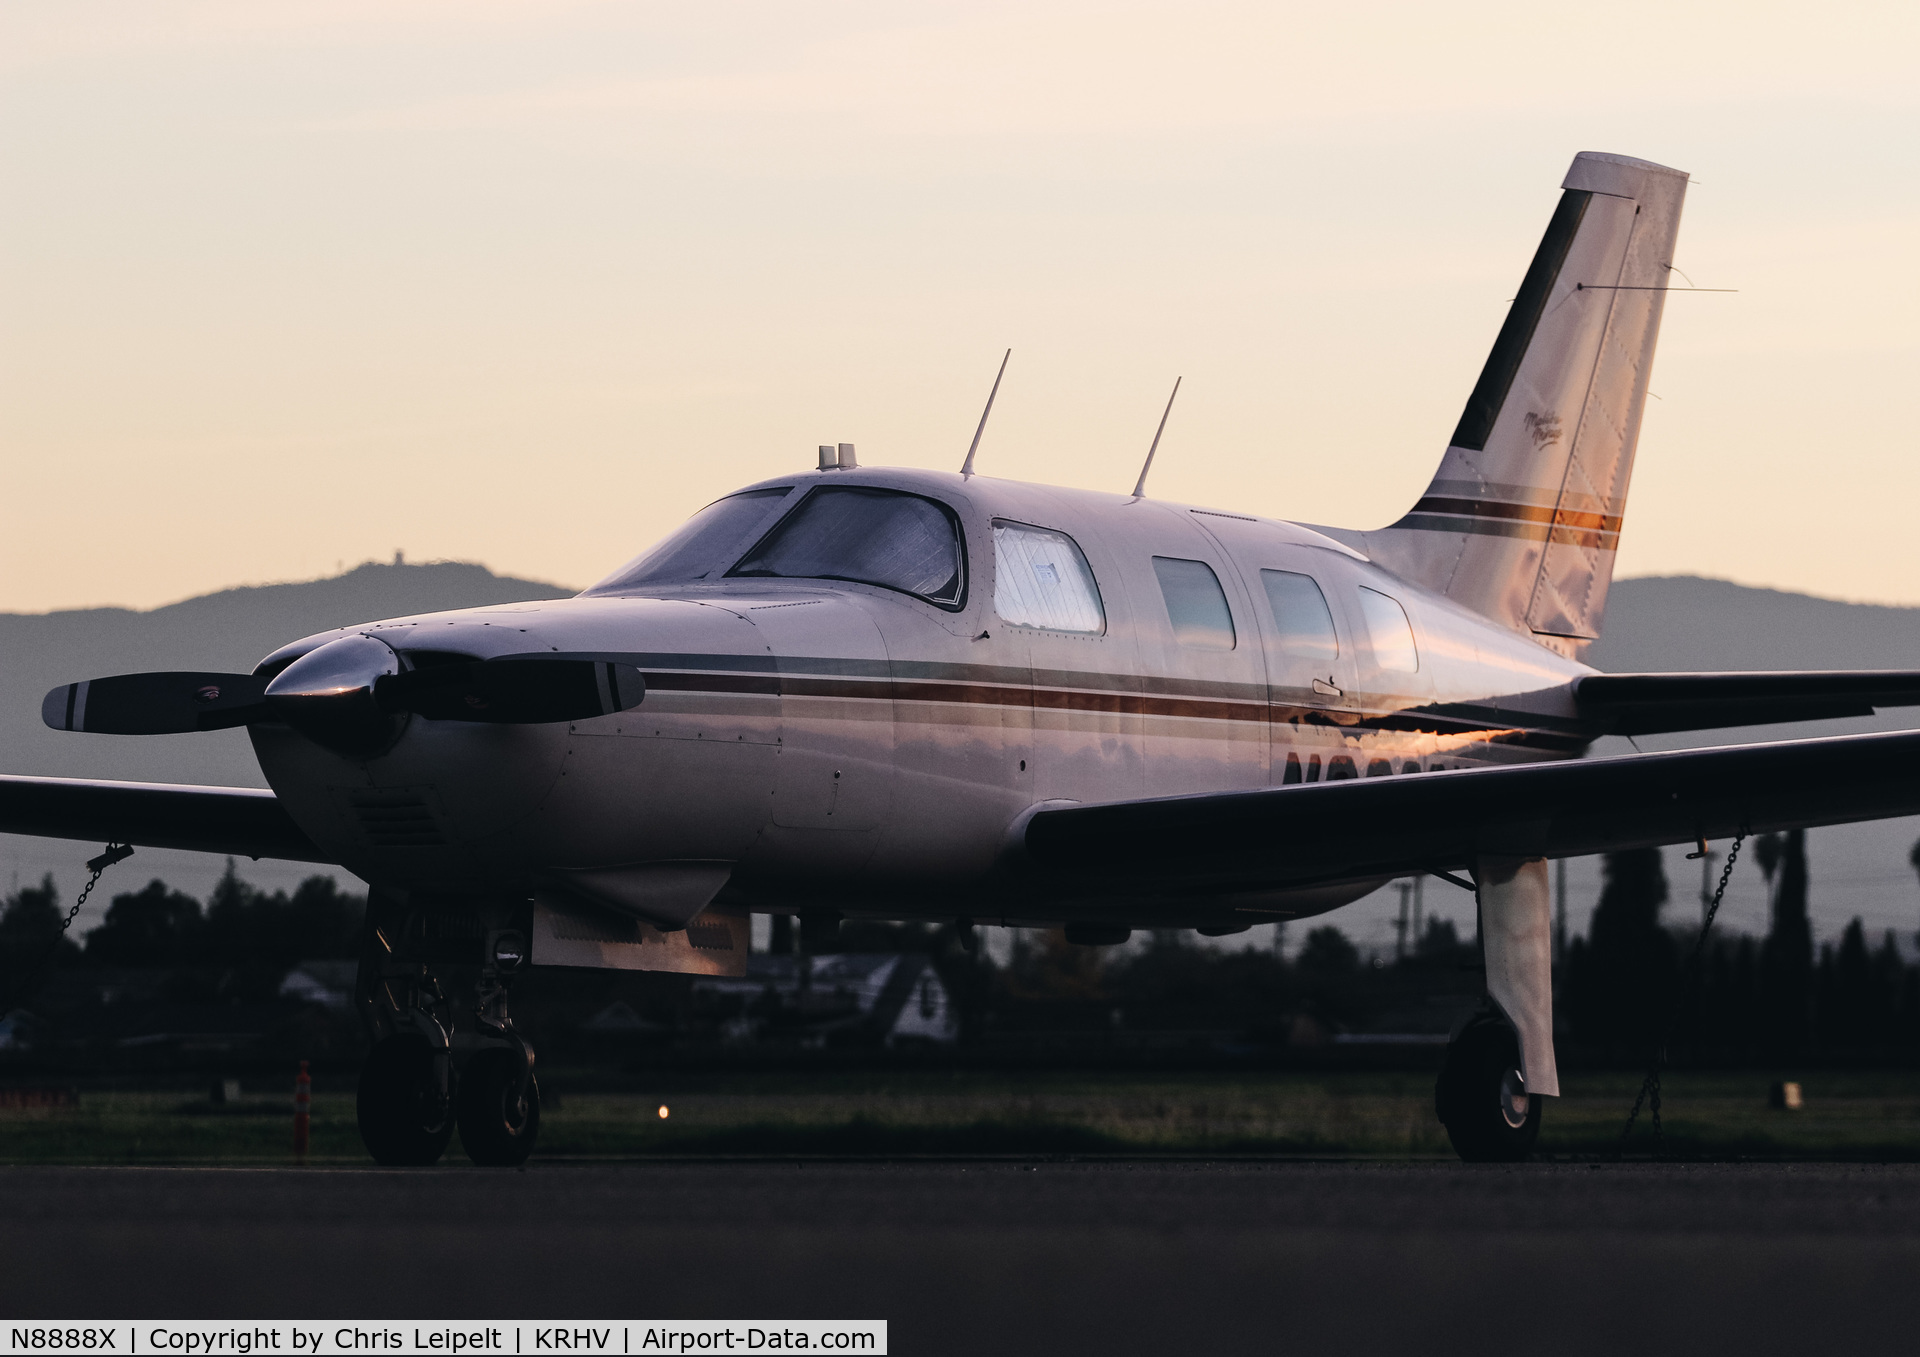 N8888X, 1989 Piper PA-46-350P Malibu Mirage C/N 4622078, 1989 Piper PA-46-350P Malibu visiting at Reid Hillview Airport, San Jose, CA. Repositioned to Houston, TX in January 2018.